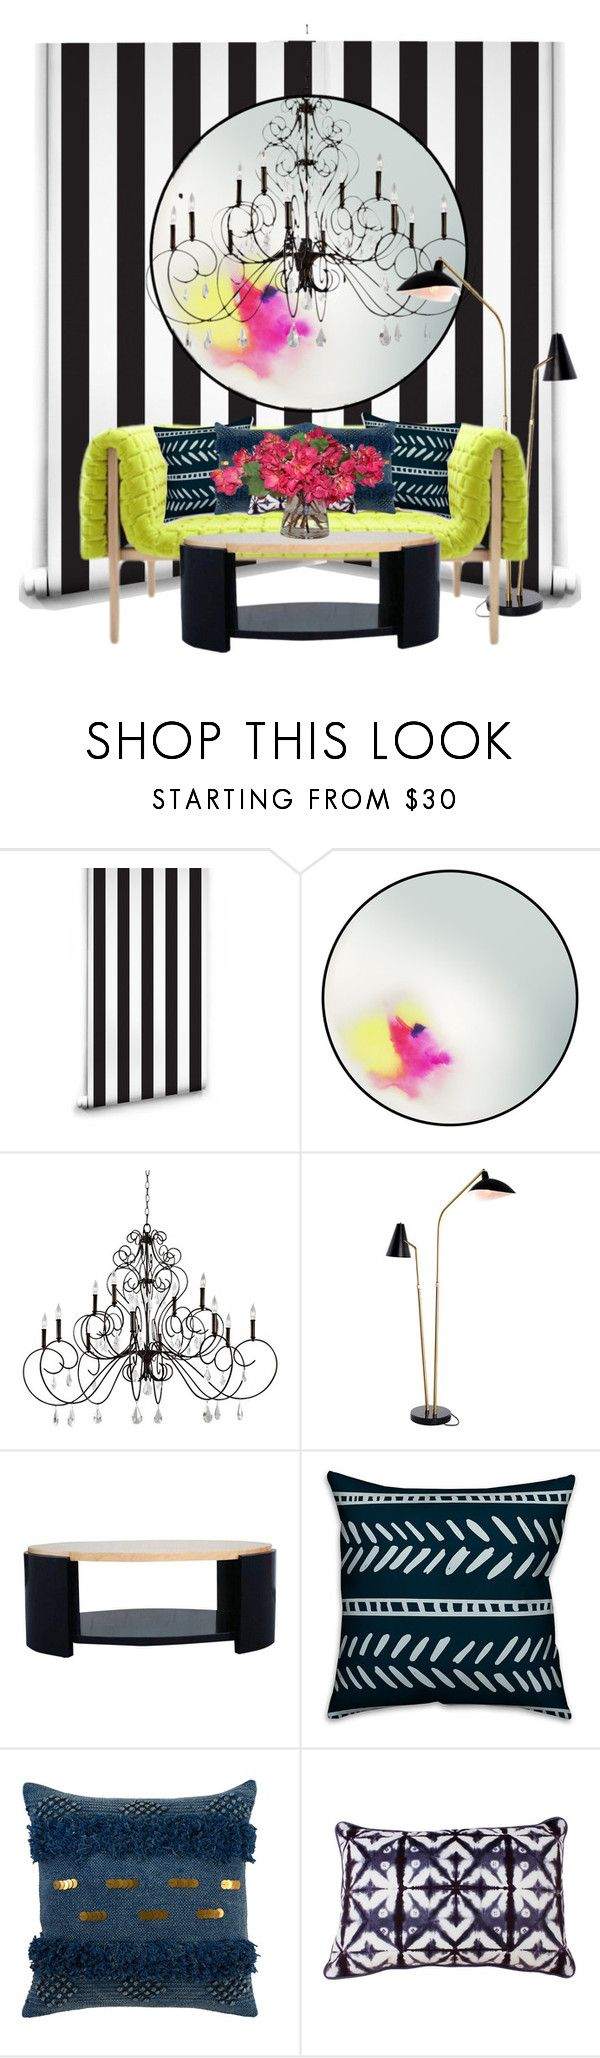 """""""Neon meets conservative..."""" by gloriettequartet ❤ liked on Polyvore featuring interior, interiors, interior design, home, home decor, interior decorating, Petite Friture, Feiss, Nuevo and Ligne Roset"""